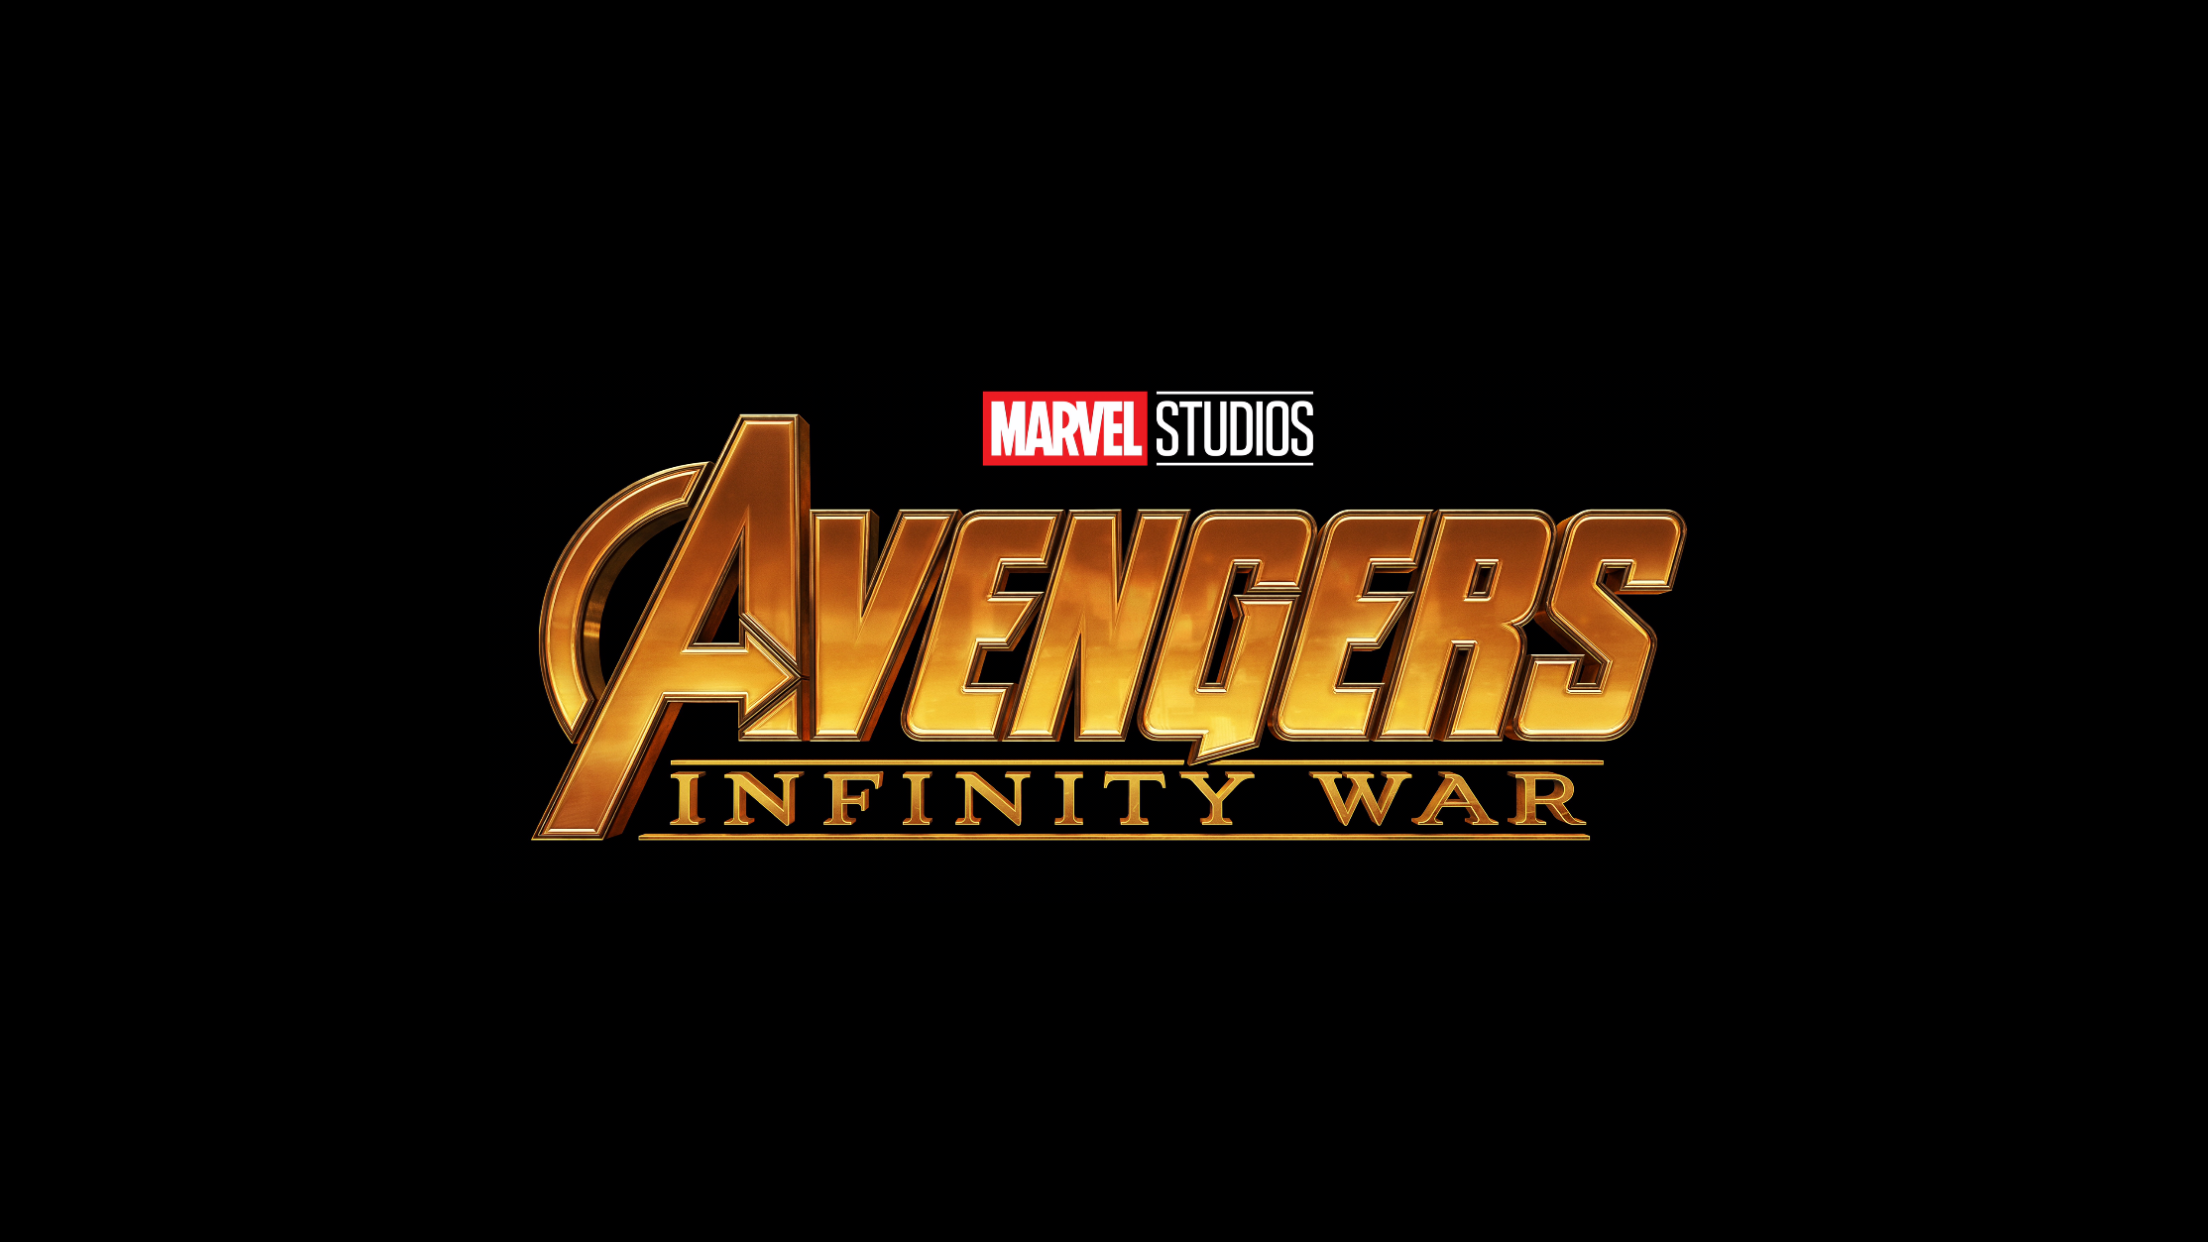 Pin By Theparademon14 On Marvel Cinematic Universe Marvel Studios Marvel Cinematic Avengers Infinity War